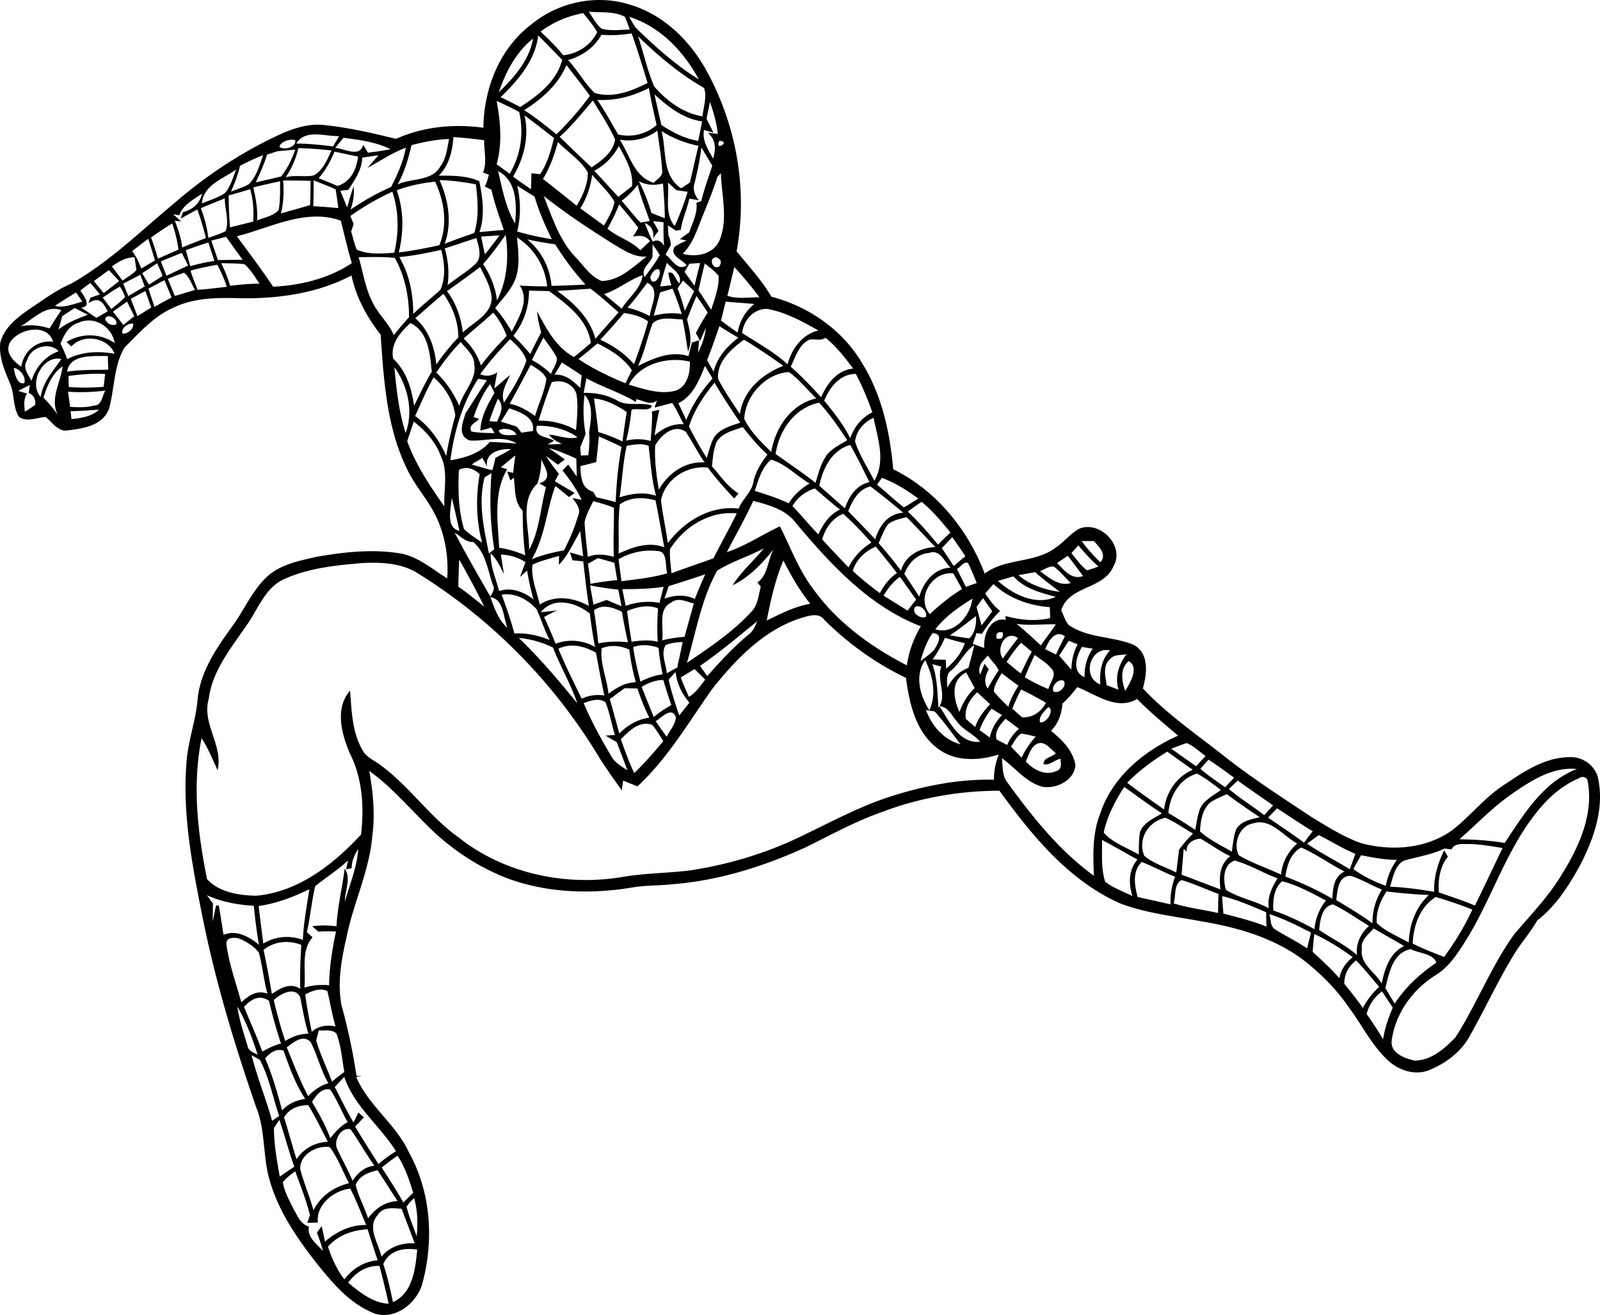 Free Printable Spiderman Coloring Pages For Kids - Free Spiderman Printables